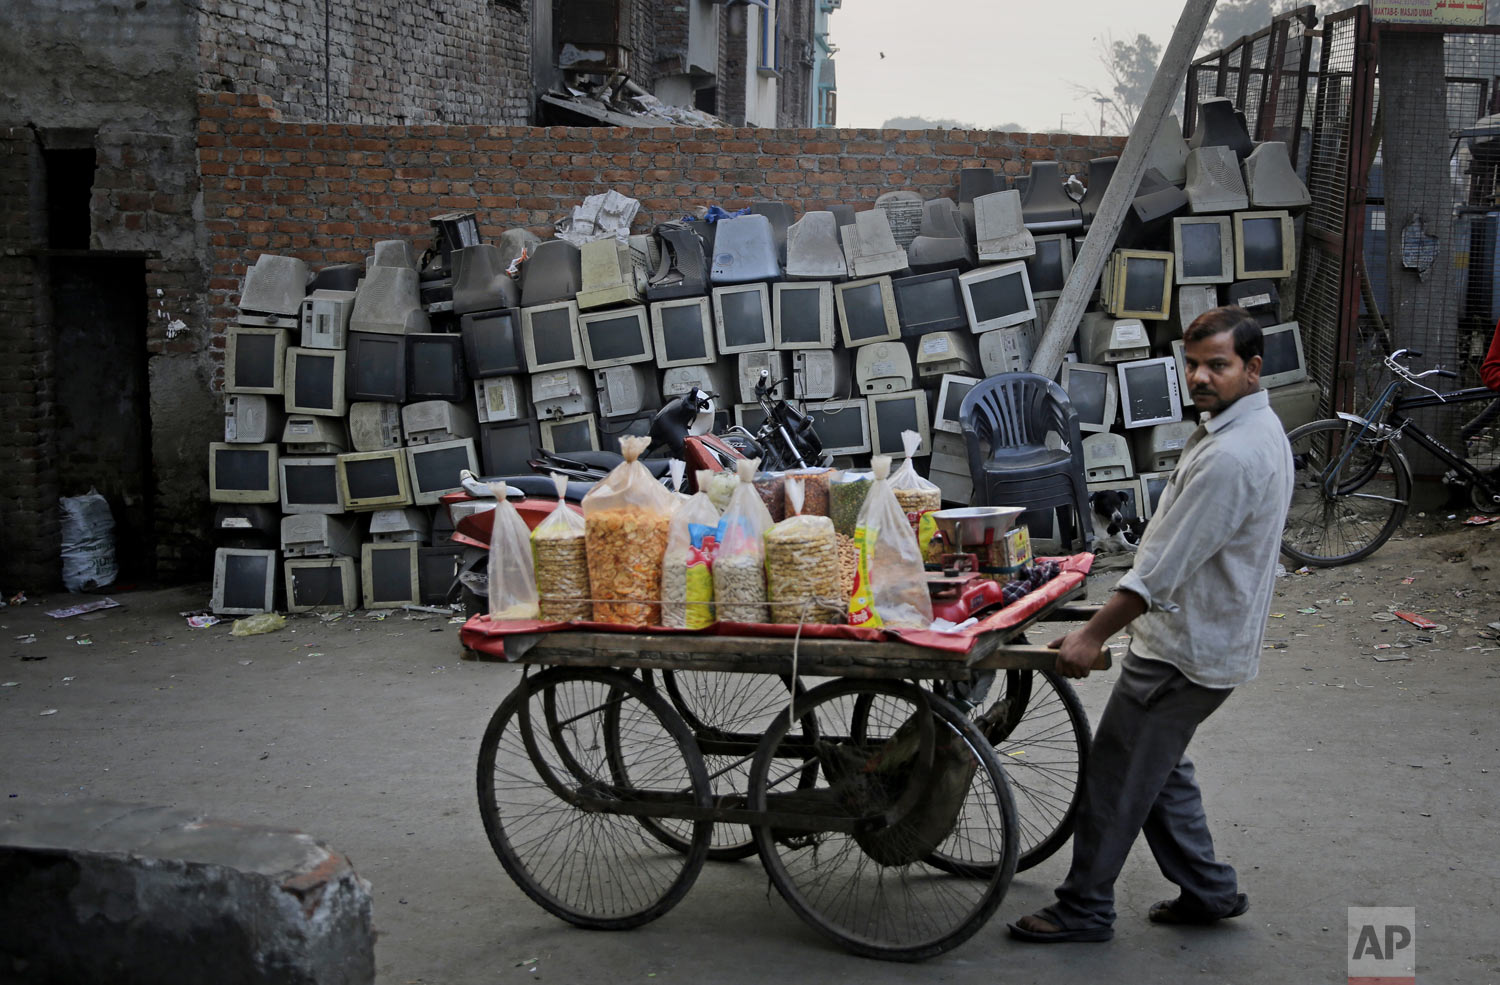 A snack vendor pushes his cart past discarded computer monitors stacked next to a wall on the side of a road in New Delhi, India, on Saturday, Dec. 8, 2018. (AP Photo/Altaf Qadri)